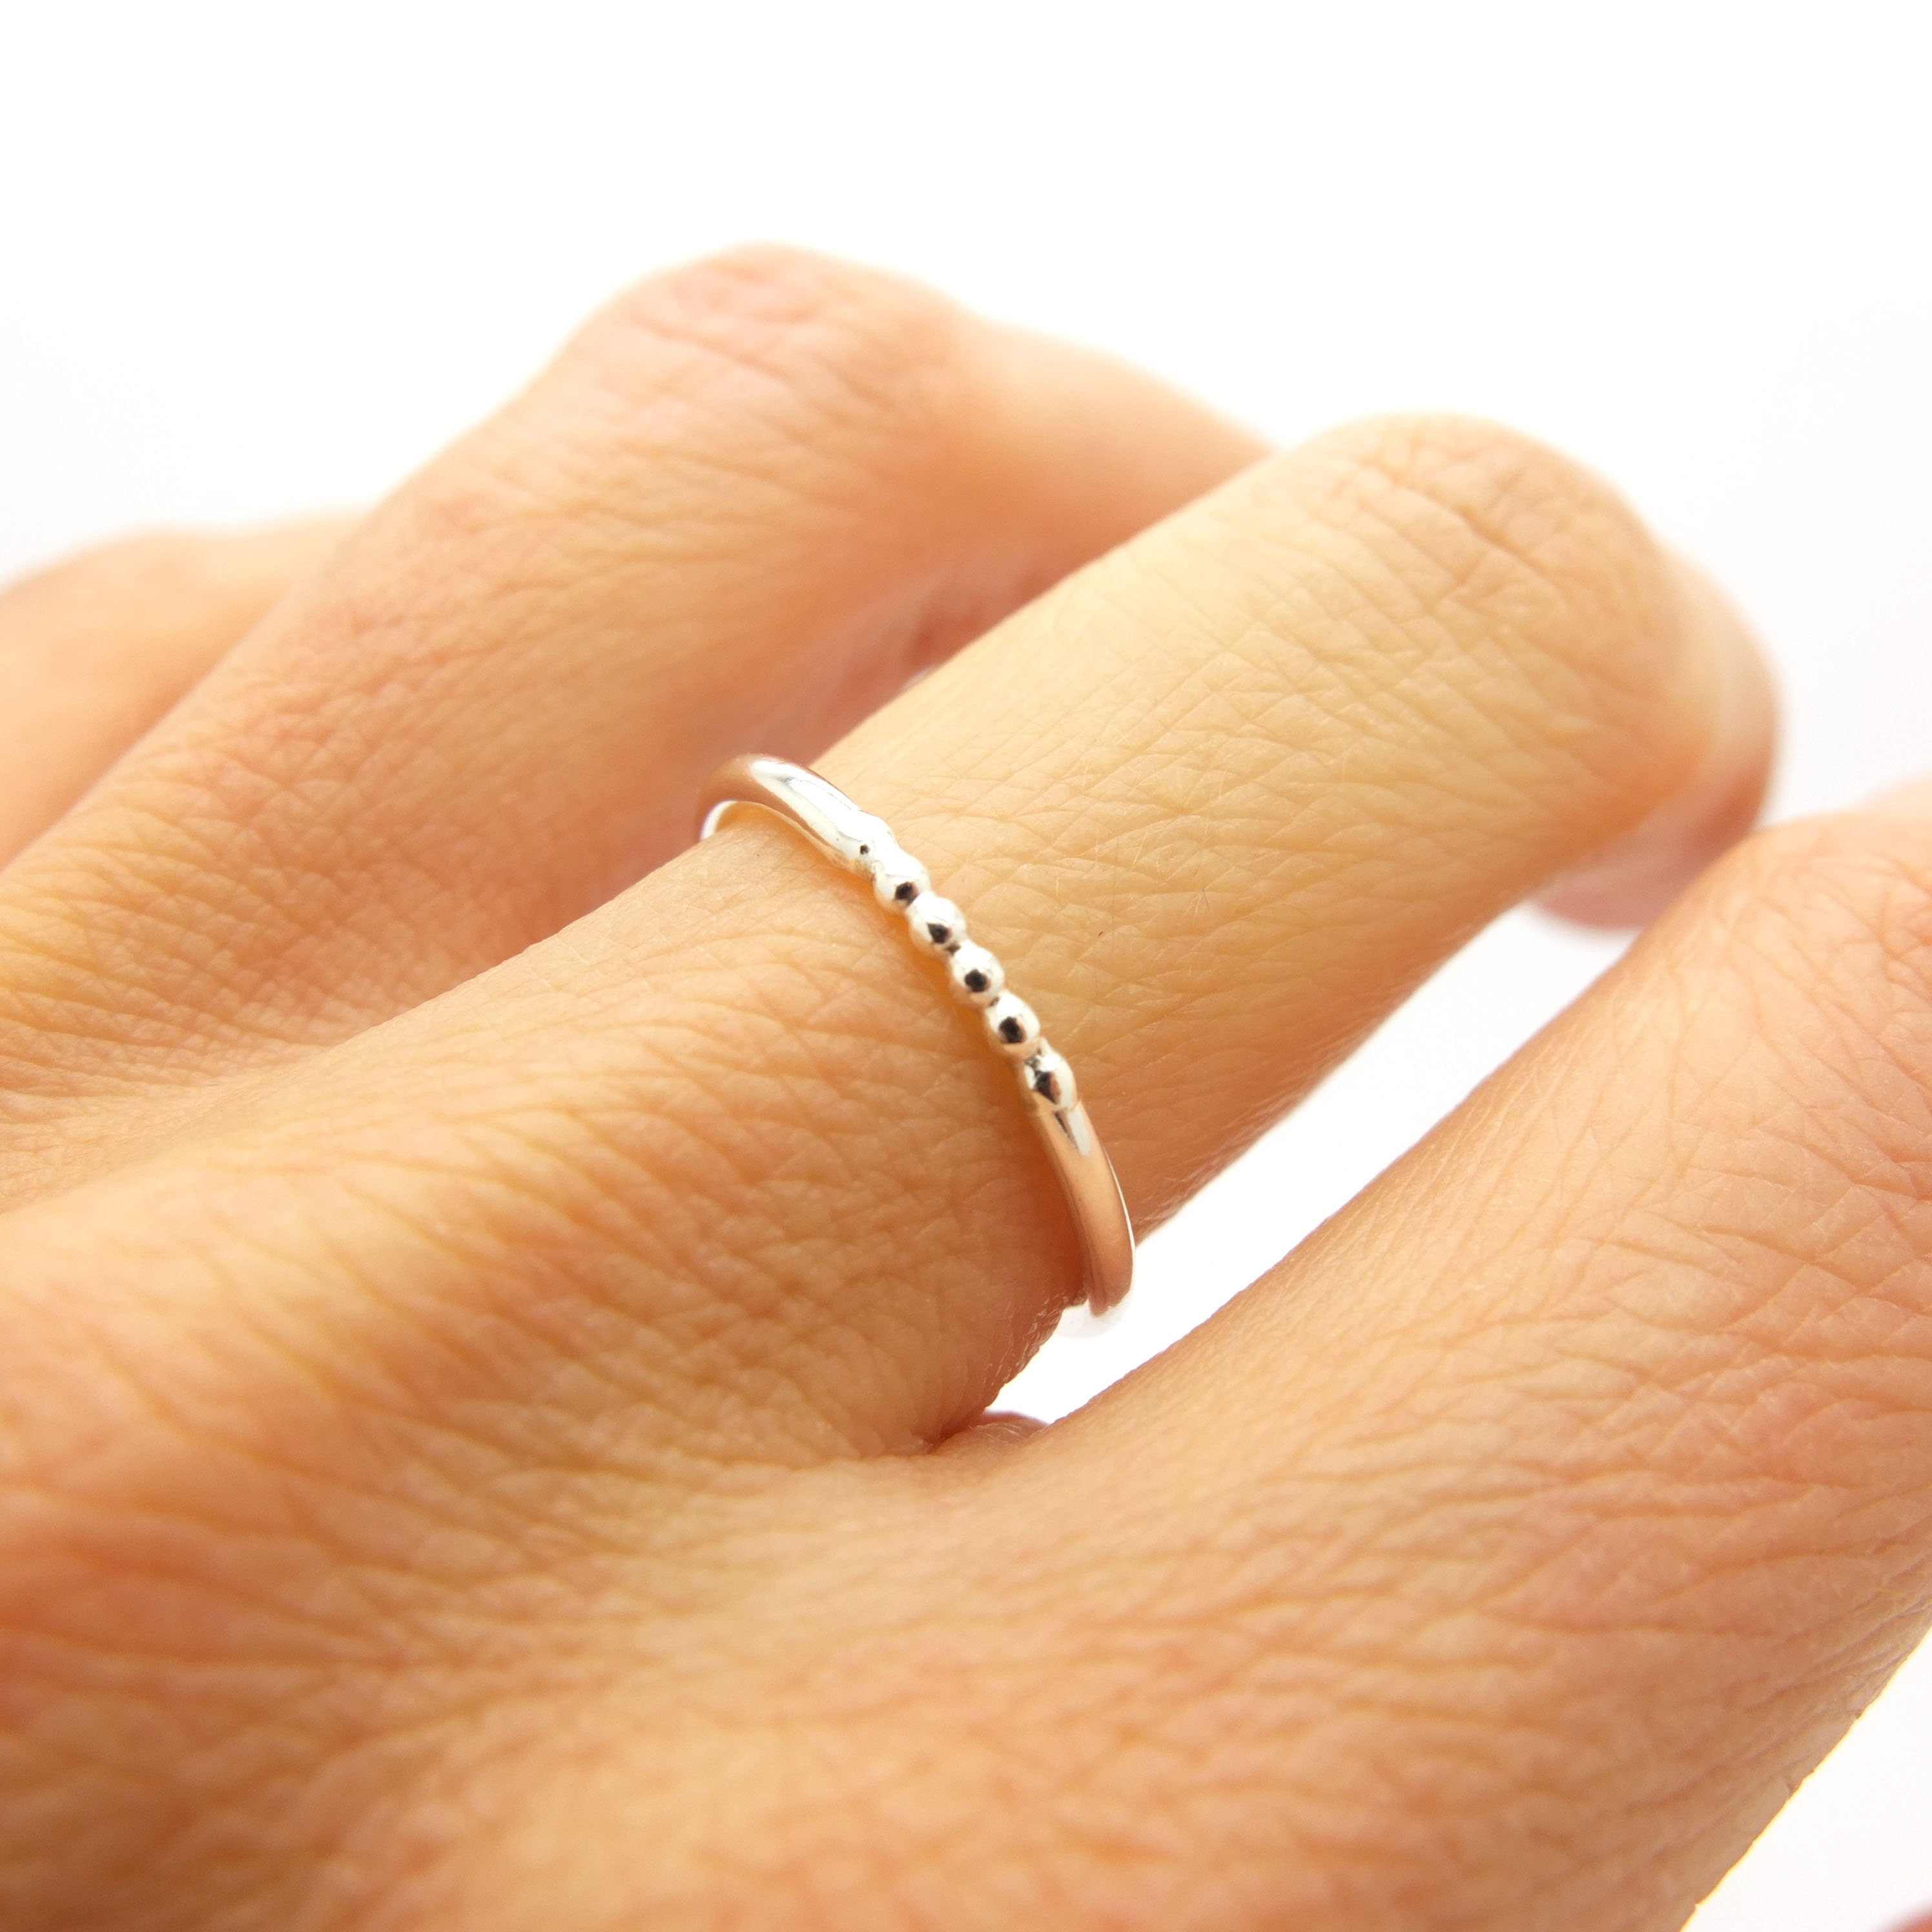 Simple Sterling Silver Stacking Ring